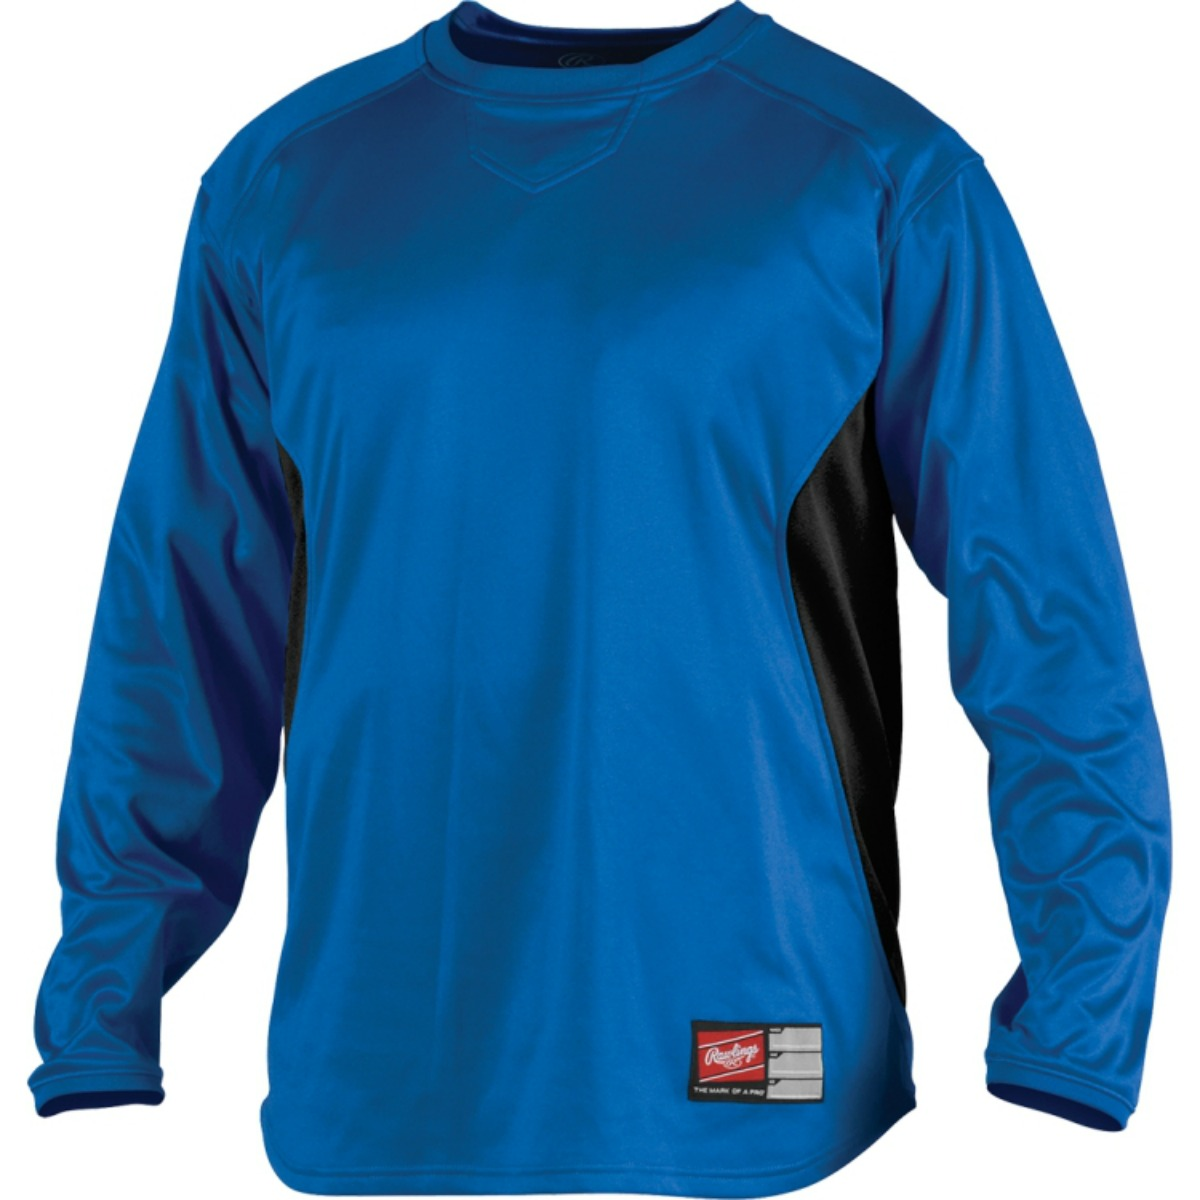 Rawlings UDFP2 Men's Dugout Fleece Baseball Shirt Pullover ...